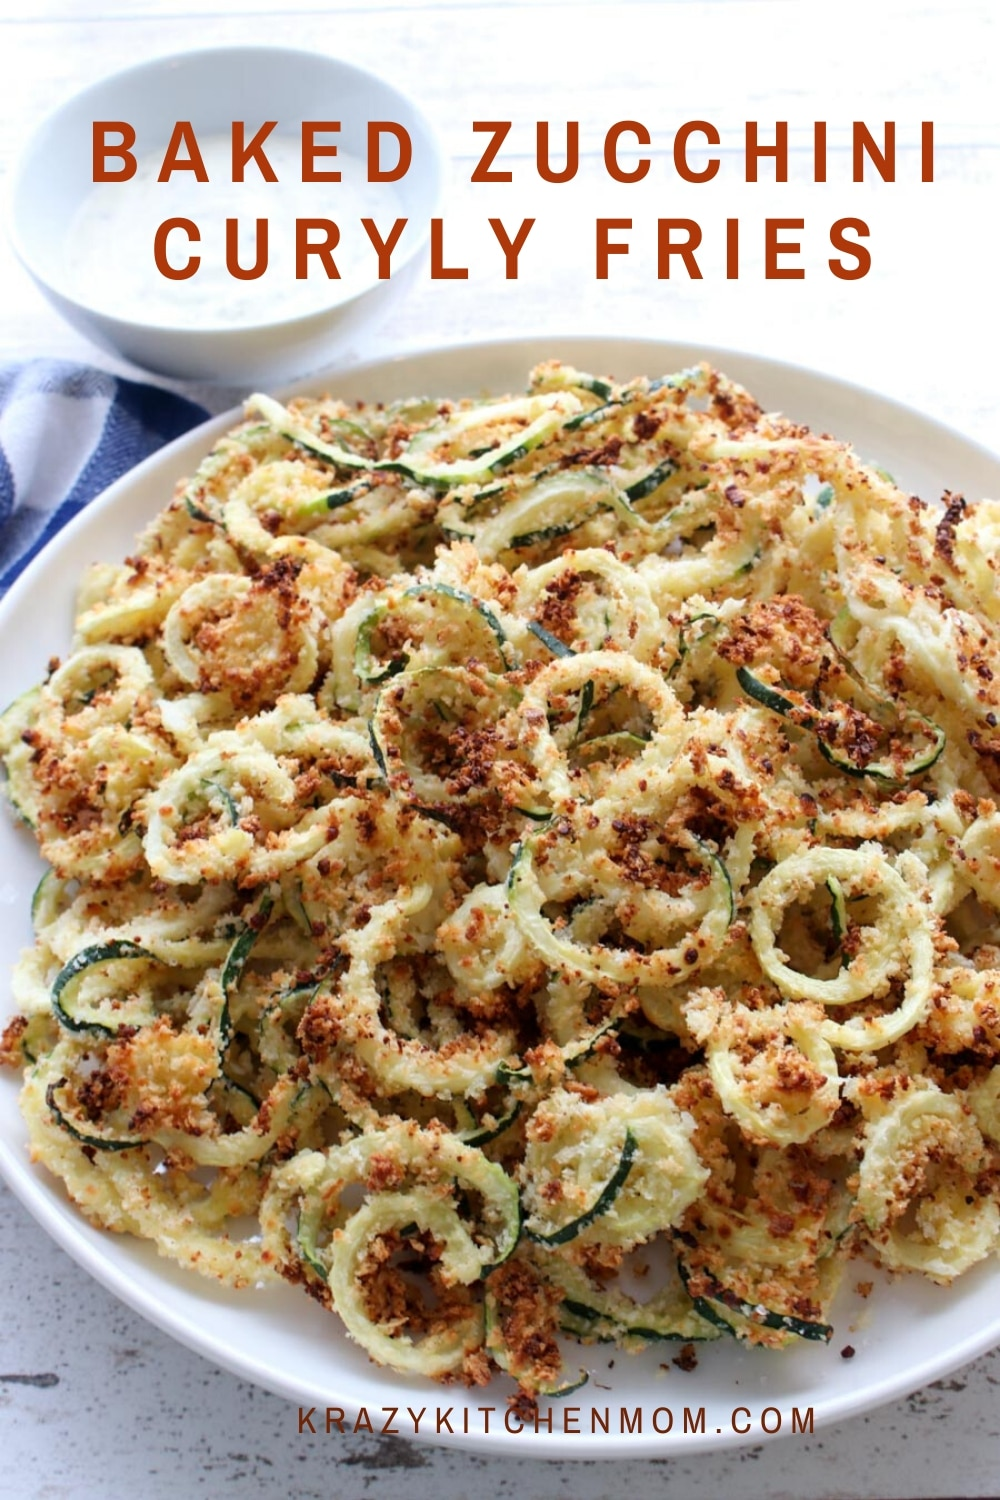 These Baked Parmesan Zucchini Fries are tender, crispy, health, and a fun way to eat zucchini. They are lightly breaded in panko bread crumbs and parmesan cheese and baked to perfection.  via @krazykitchenmom